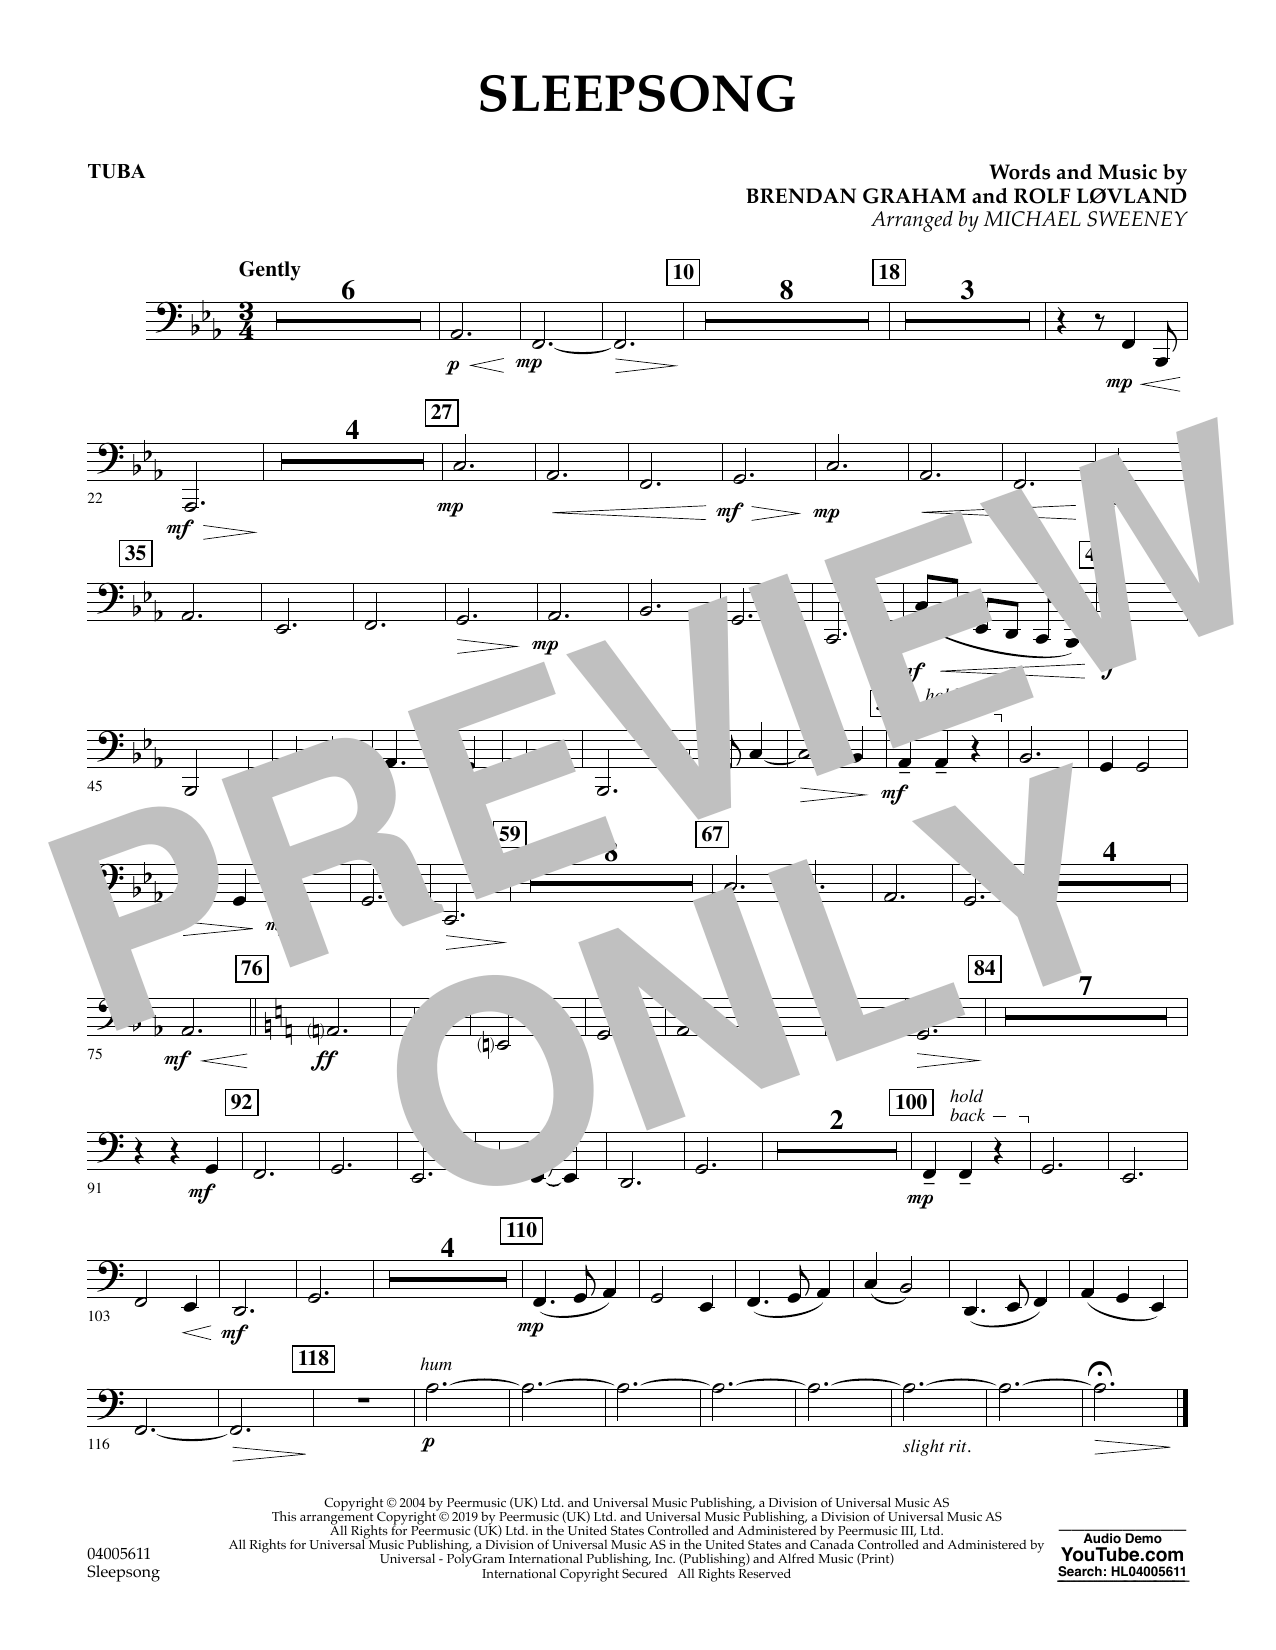 Secret Garden Sleepsong (arr. Michael Sweeney) - Tuba sheet music preview music notes and score for Concert Band including 1 page(s)